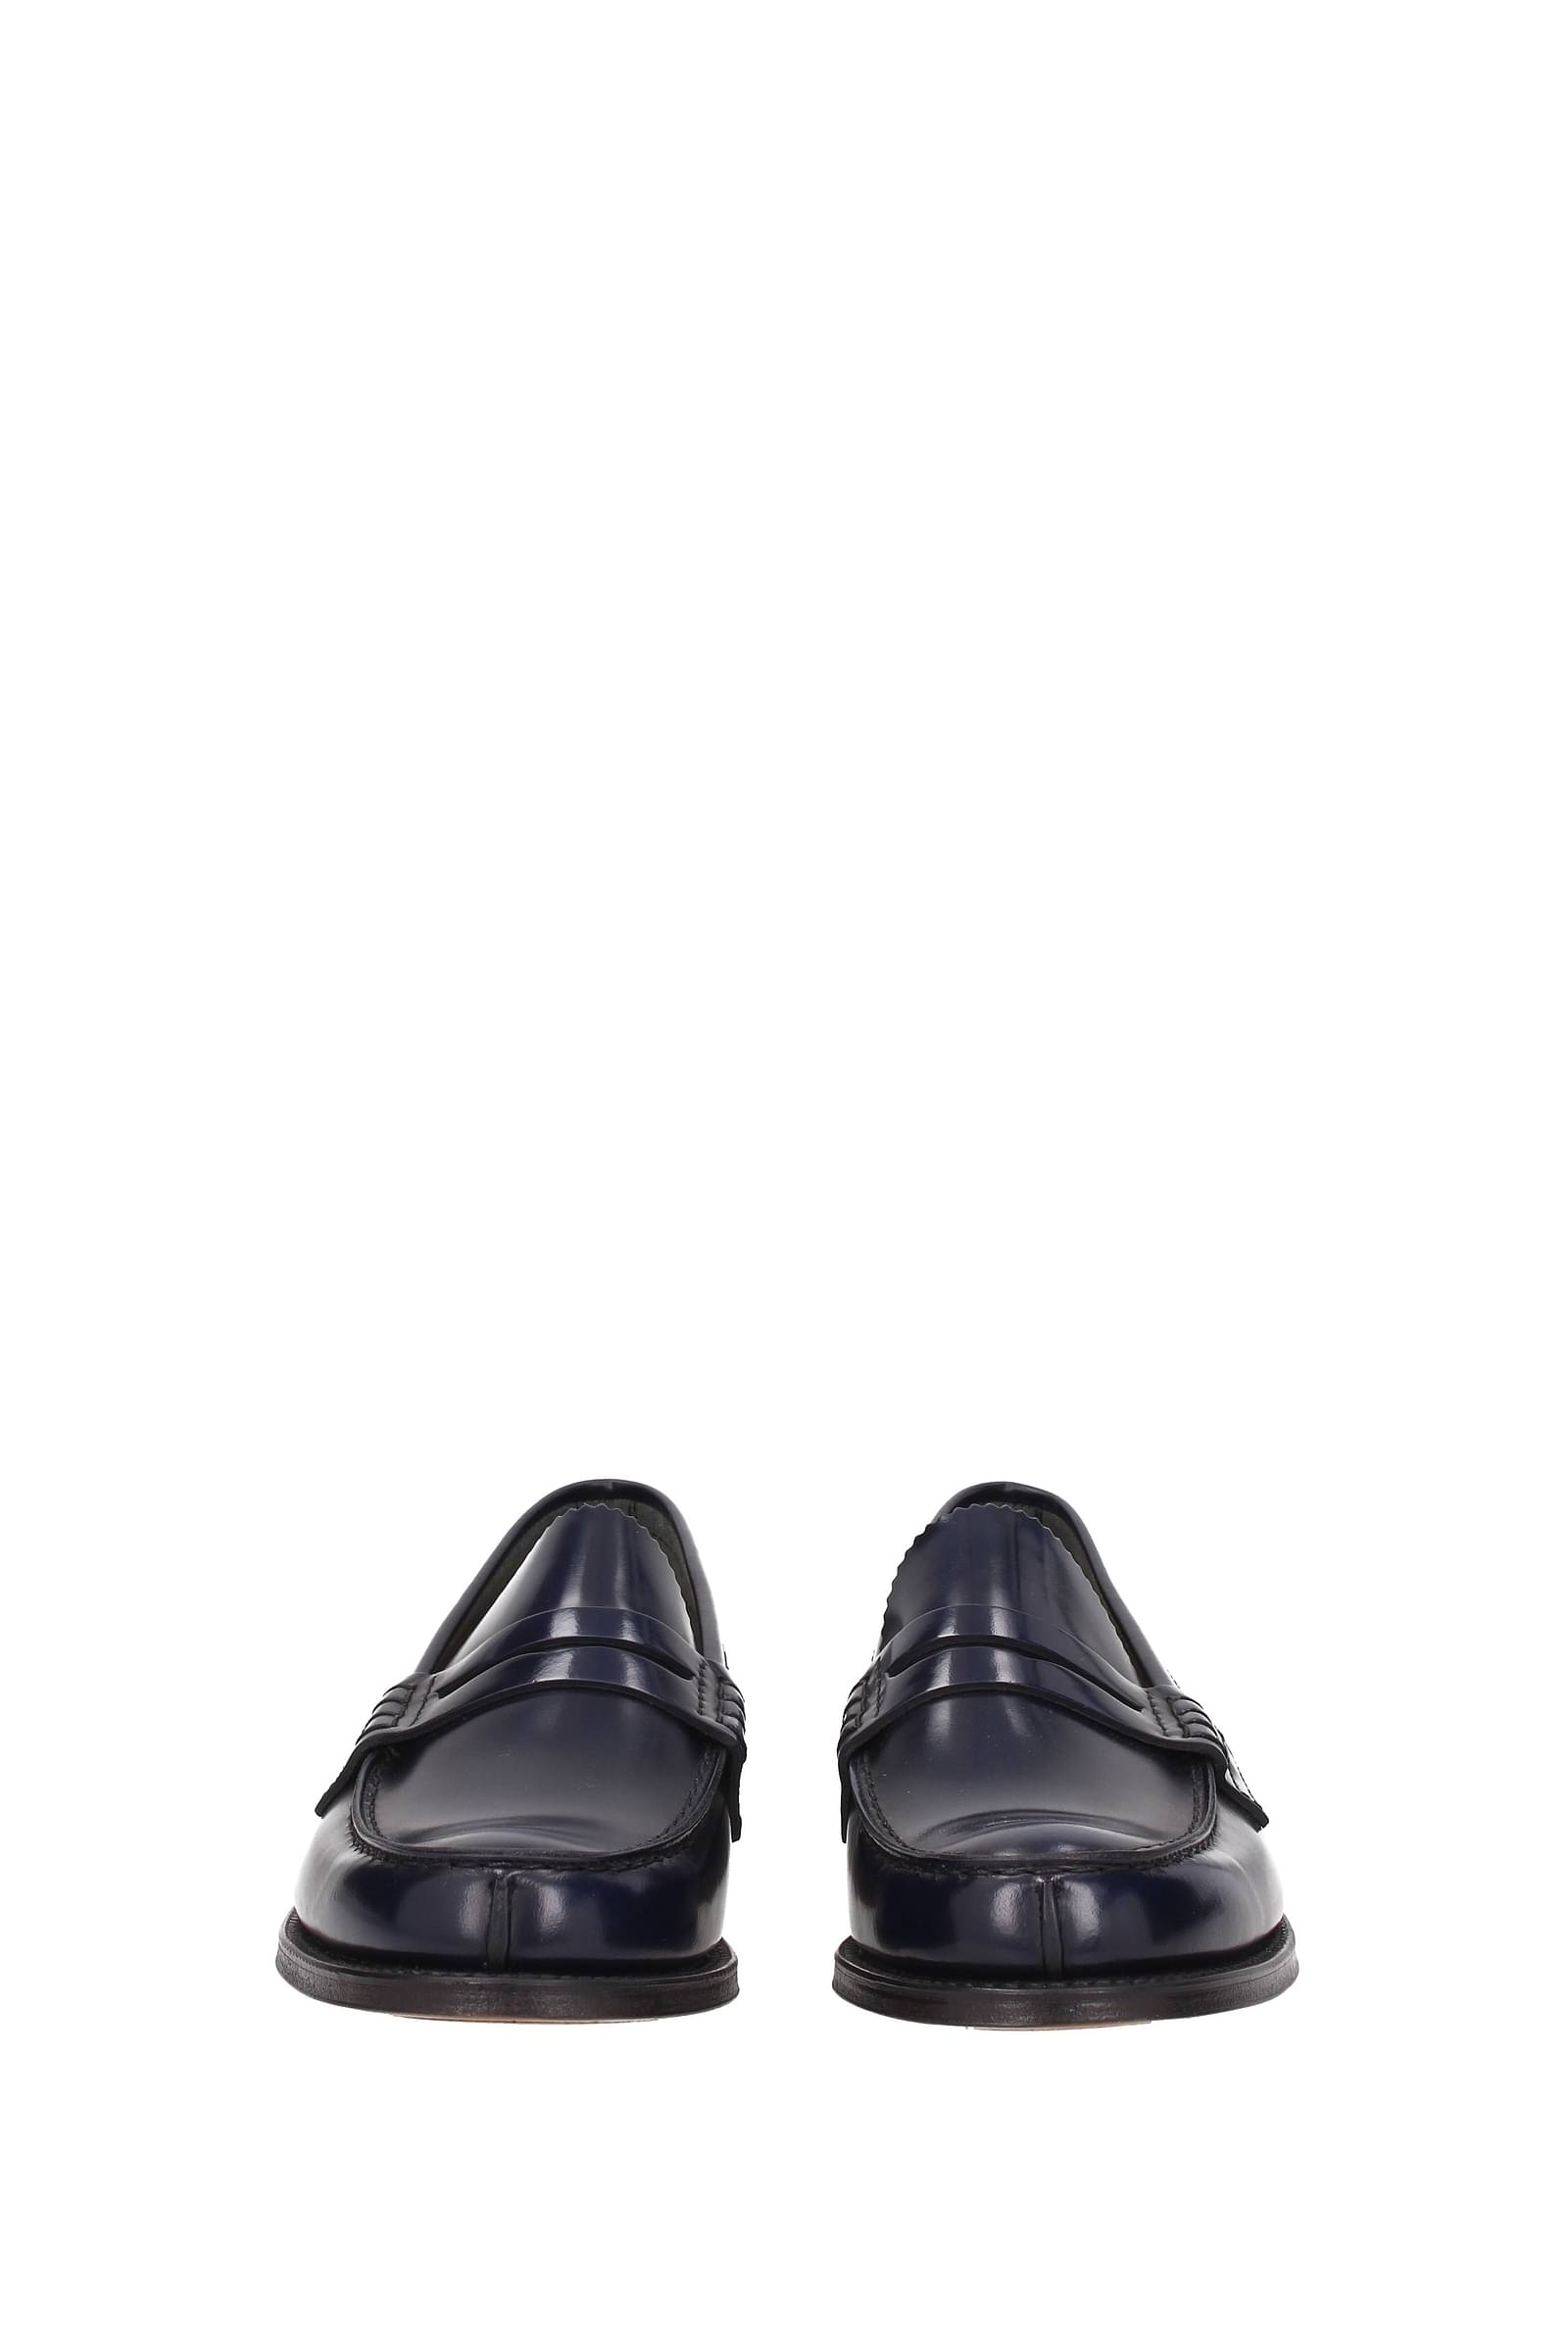 Loafers-Church-039-s-Man-Leather-TUNBRIDGE thumbnail 3